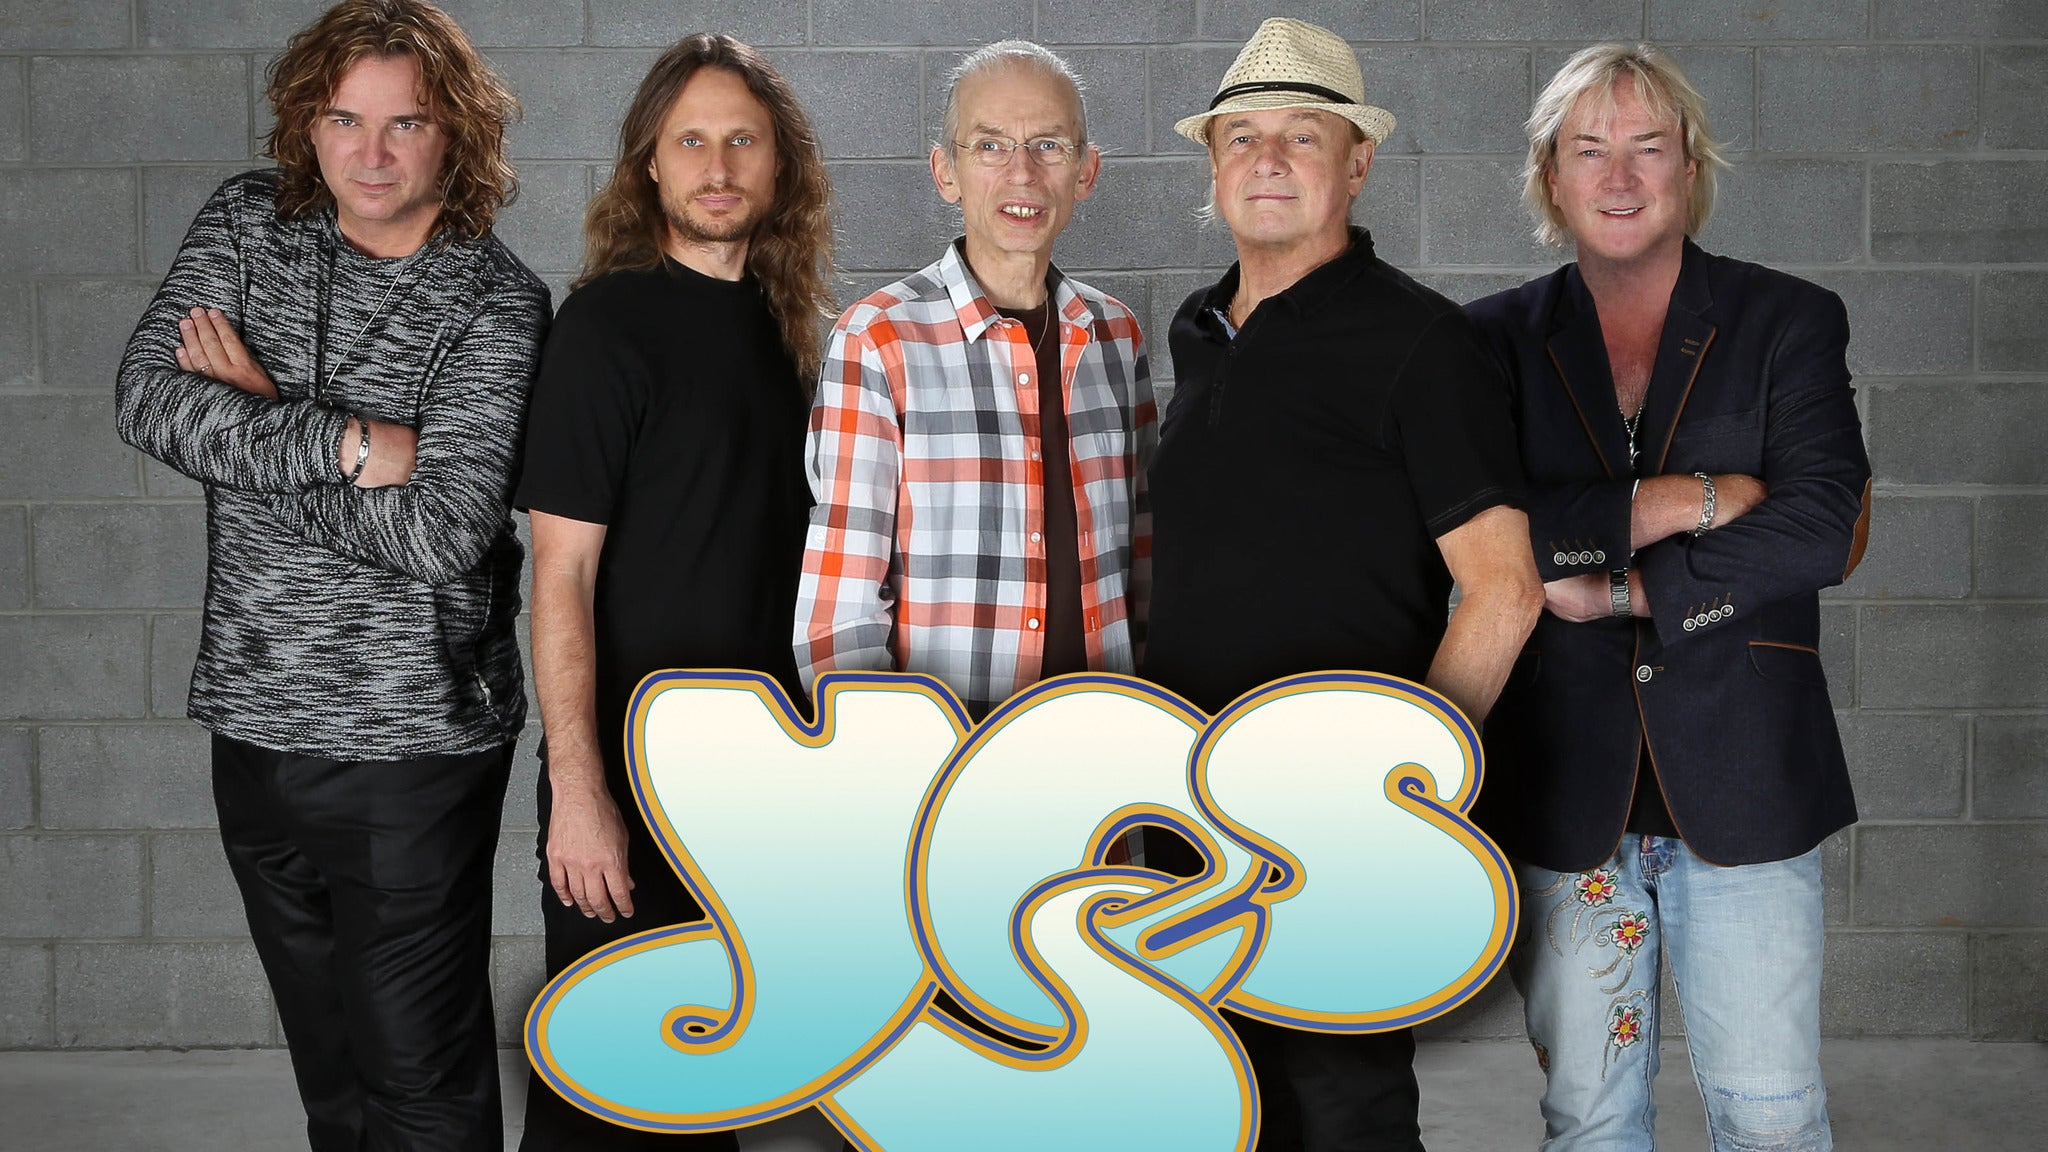 #YES50: Celebrating 50 Years Of Yes at 20 Monroe Live